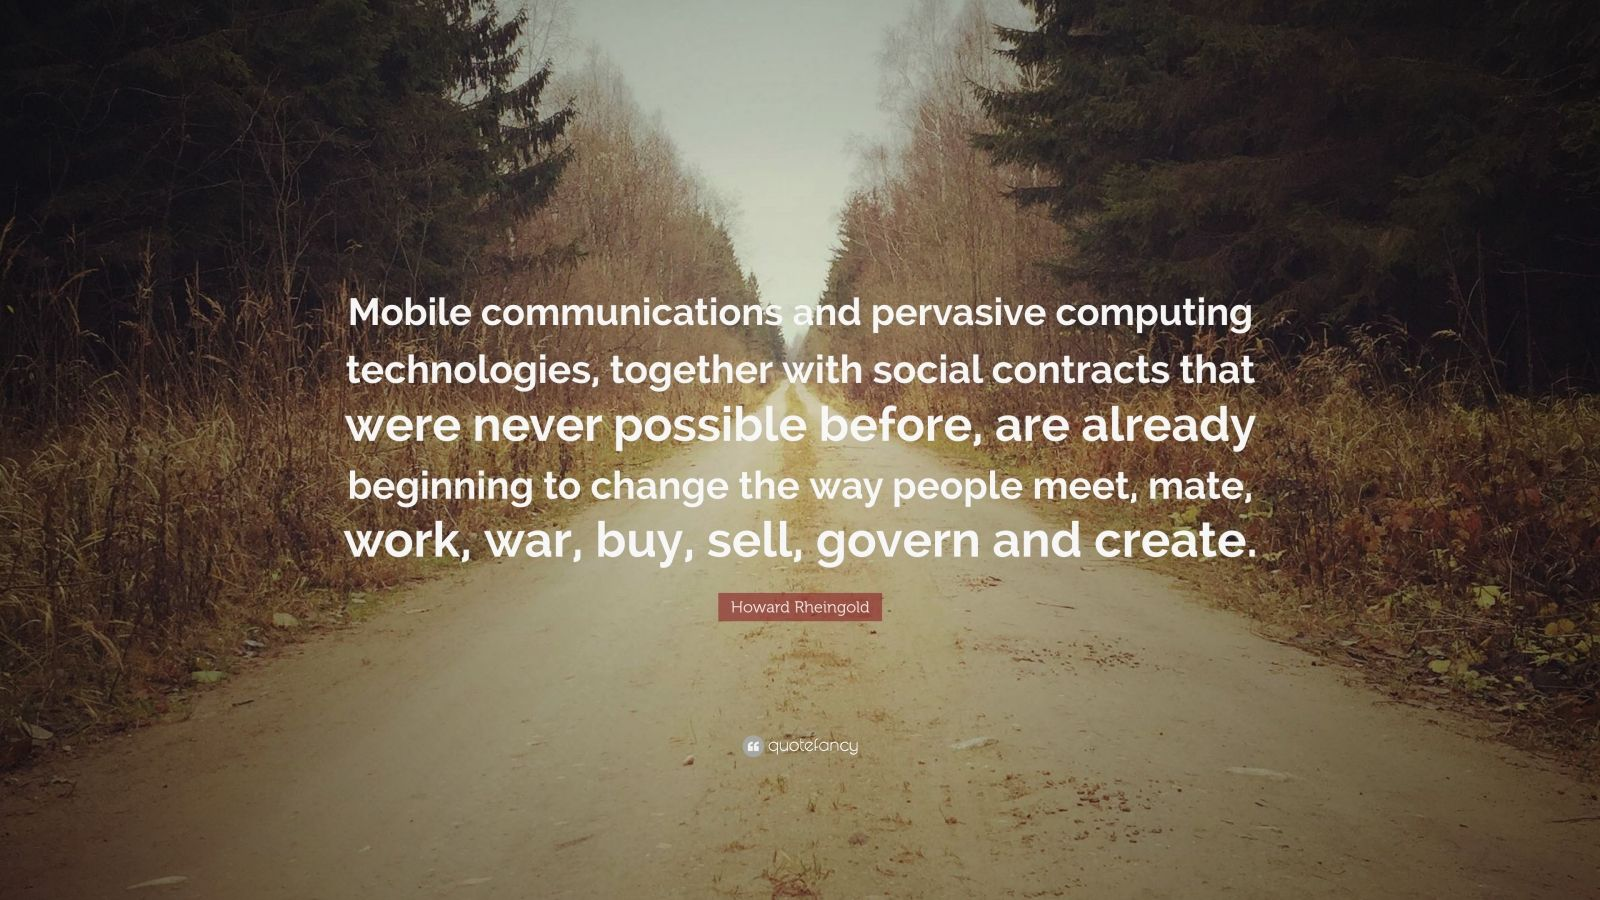 """Howard Rheingold Quote: """"Mobile communications and pervasive computing technologies, together with social contracts that were never possible before, are already beginning to change the way people meet, mate, work, war, buy, sell, govern and create."""""""